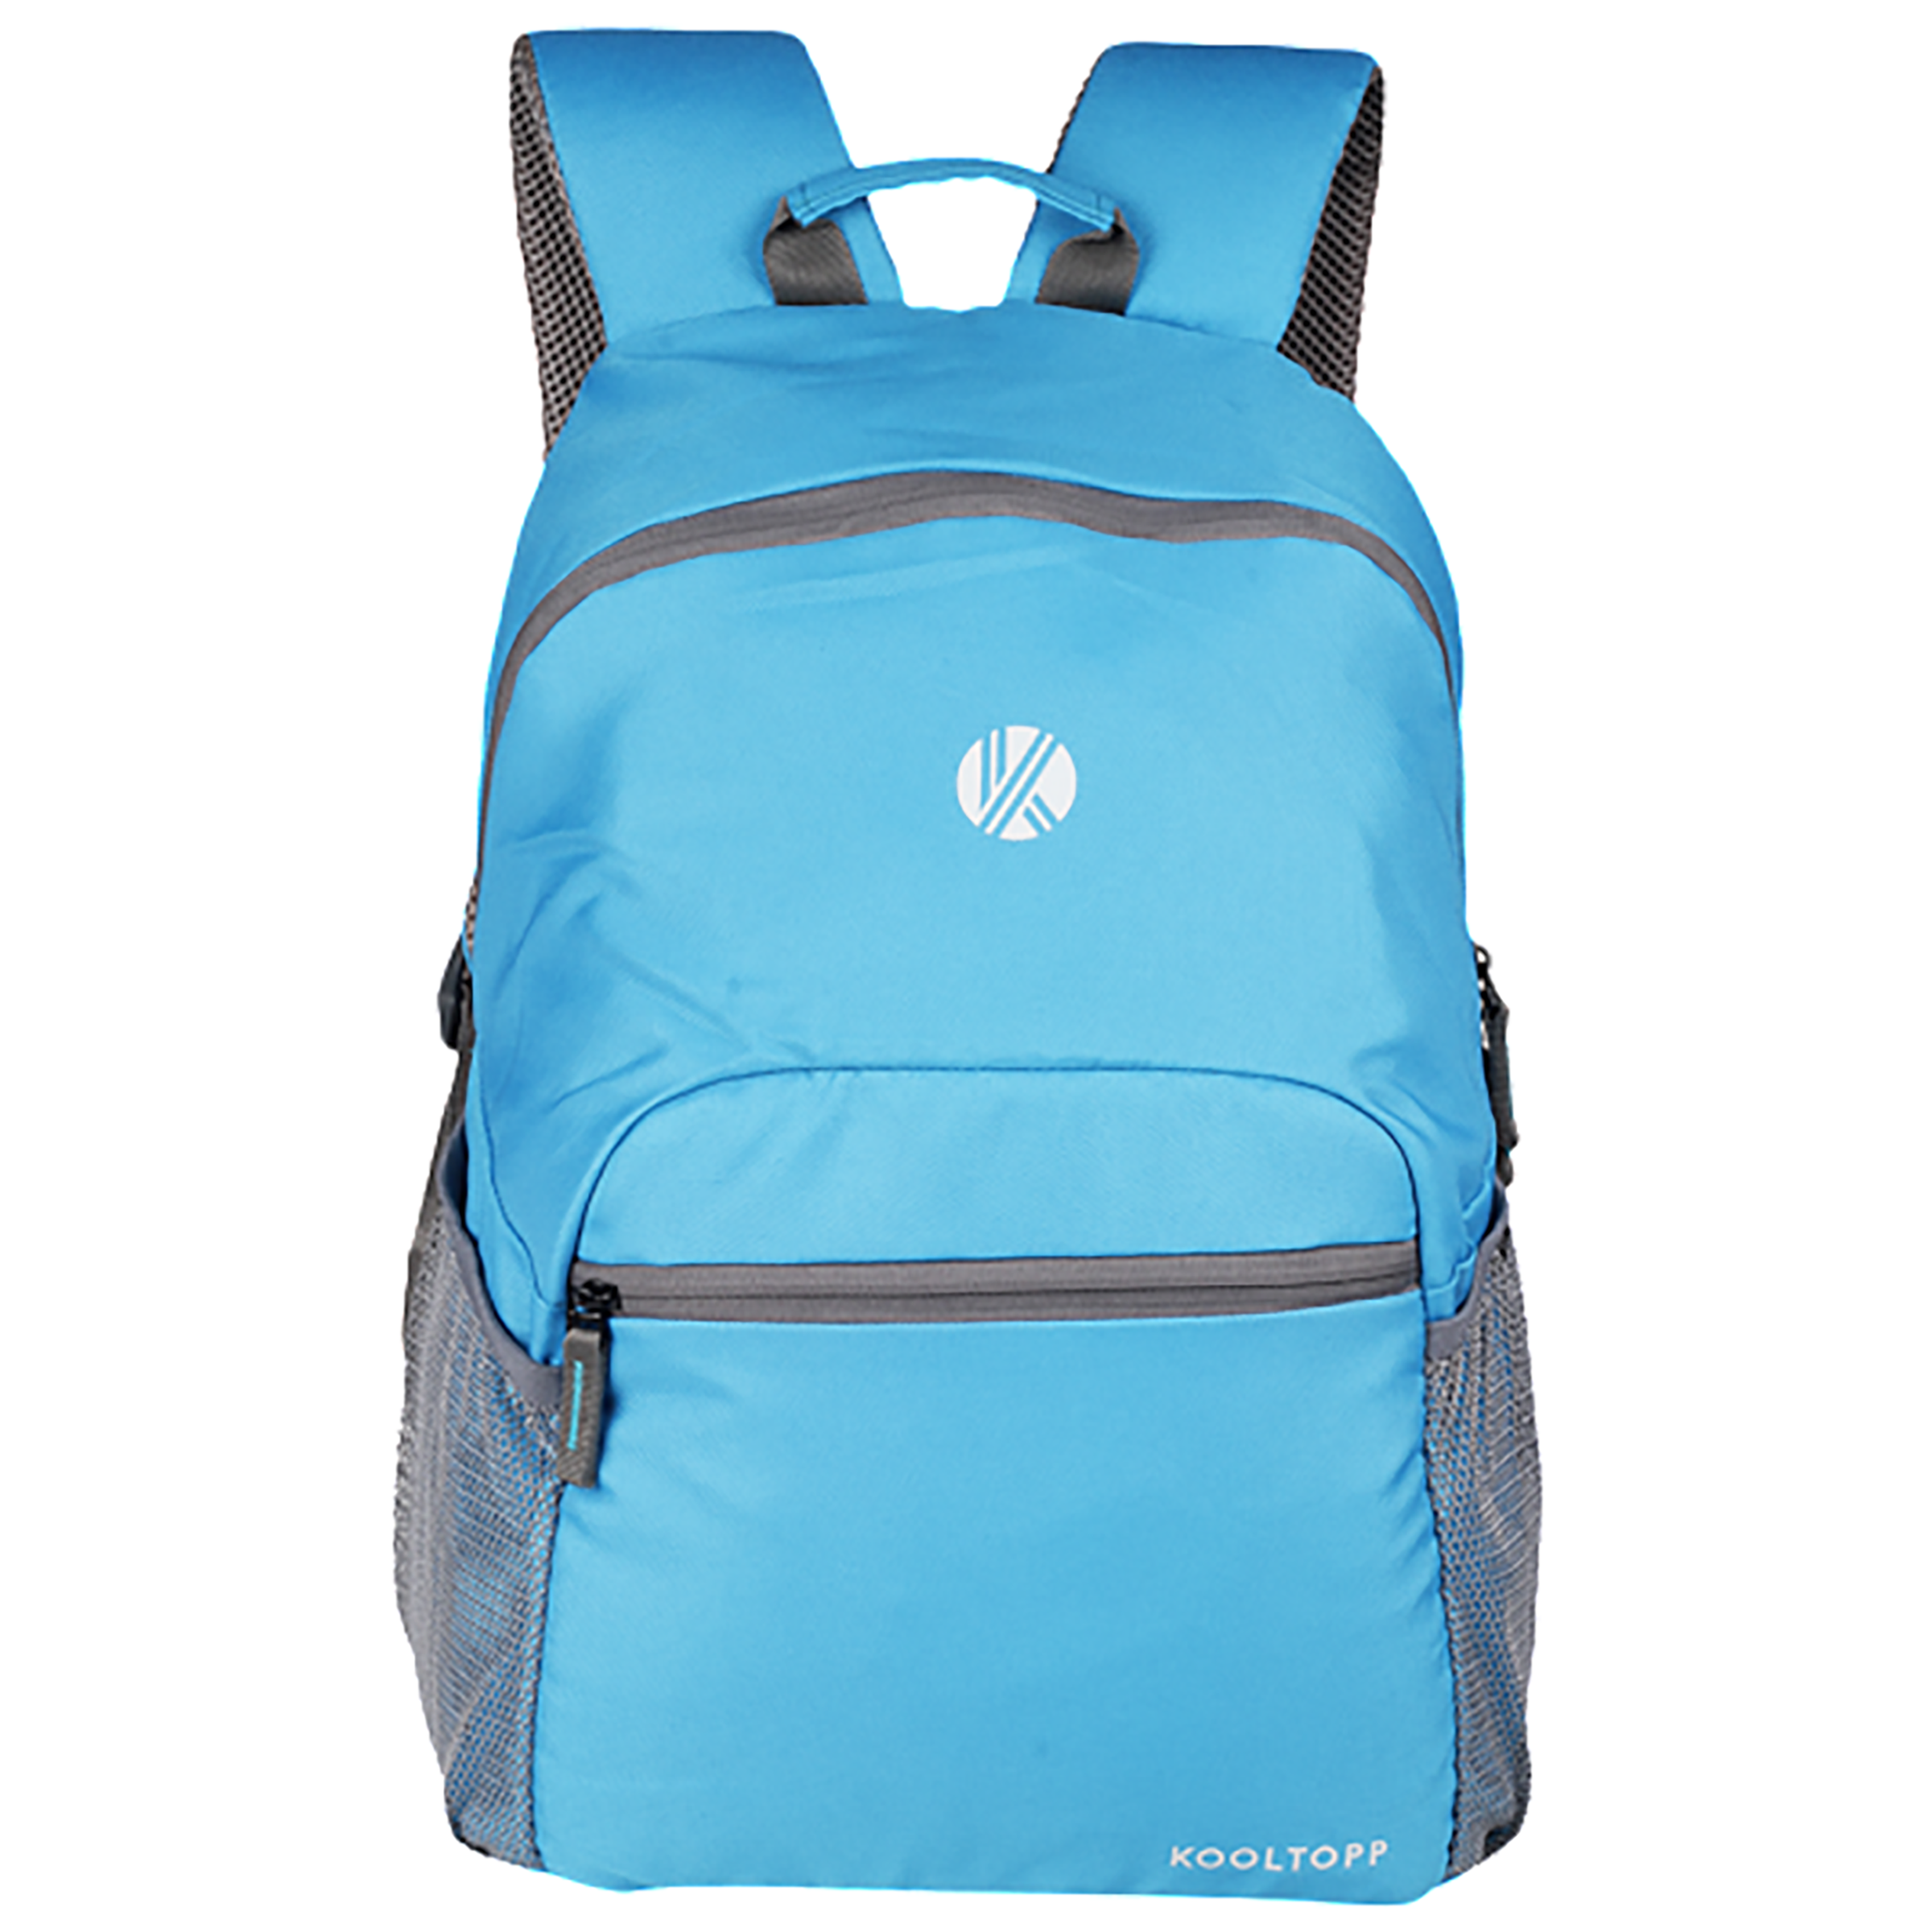 Kooltopp Classic 24 Litres Polyester Backpack for 15 Inch Laptop (Water Resistant, KT430-04, Sky Blue)_1